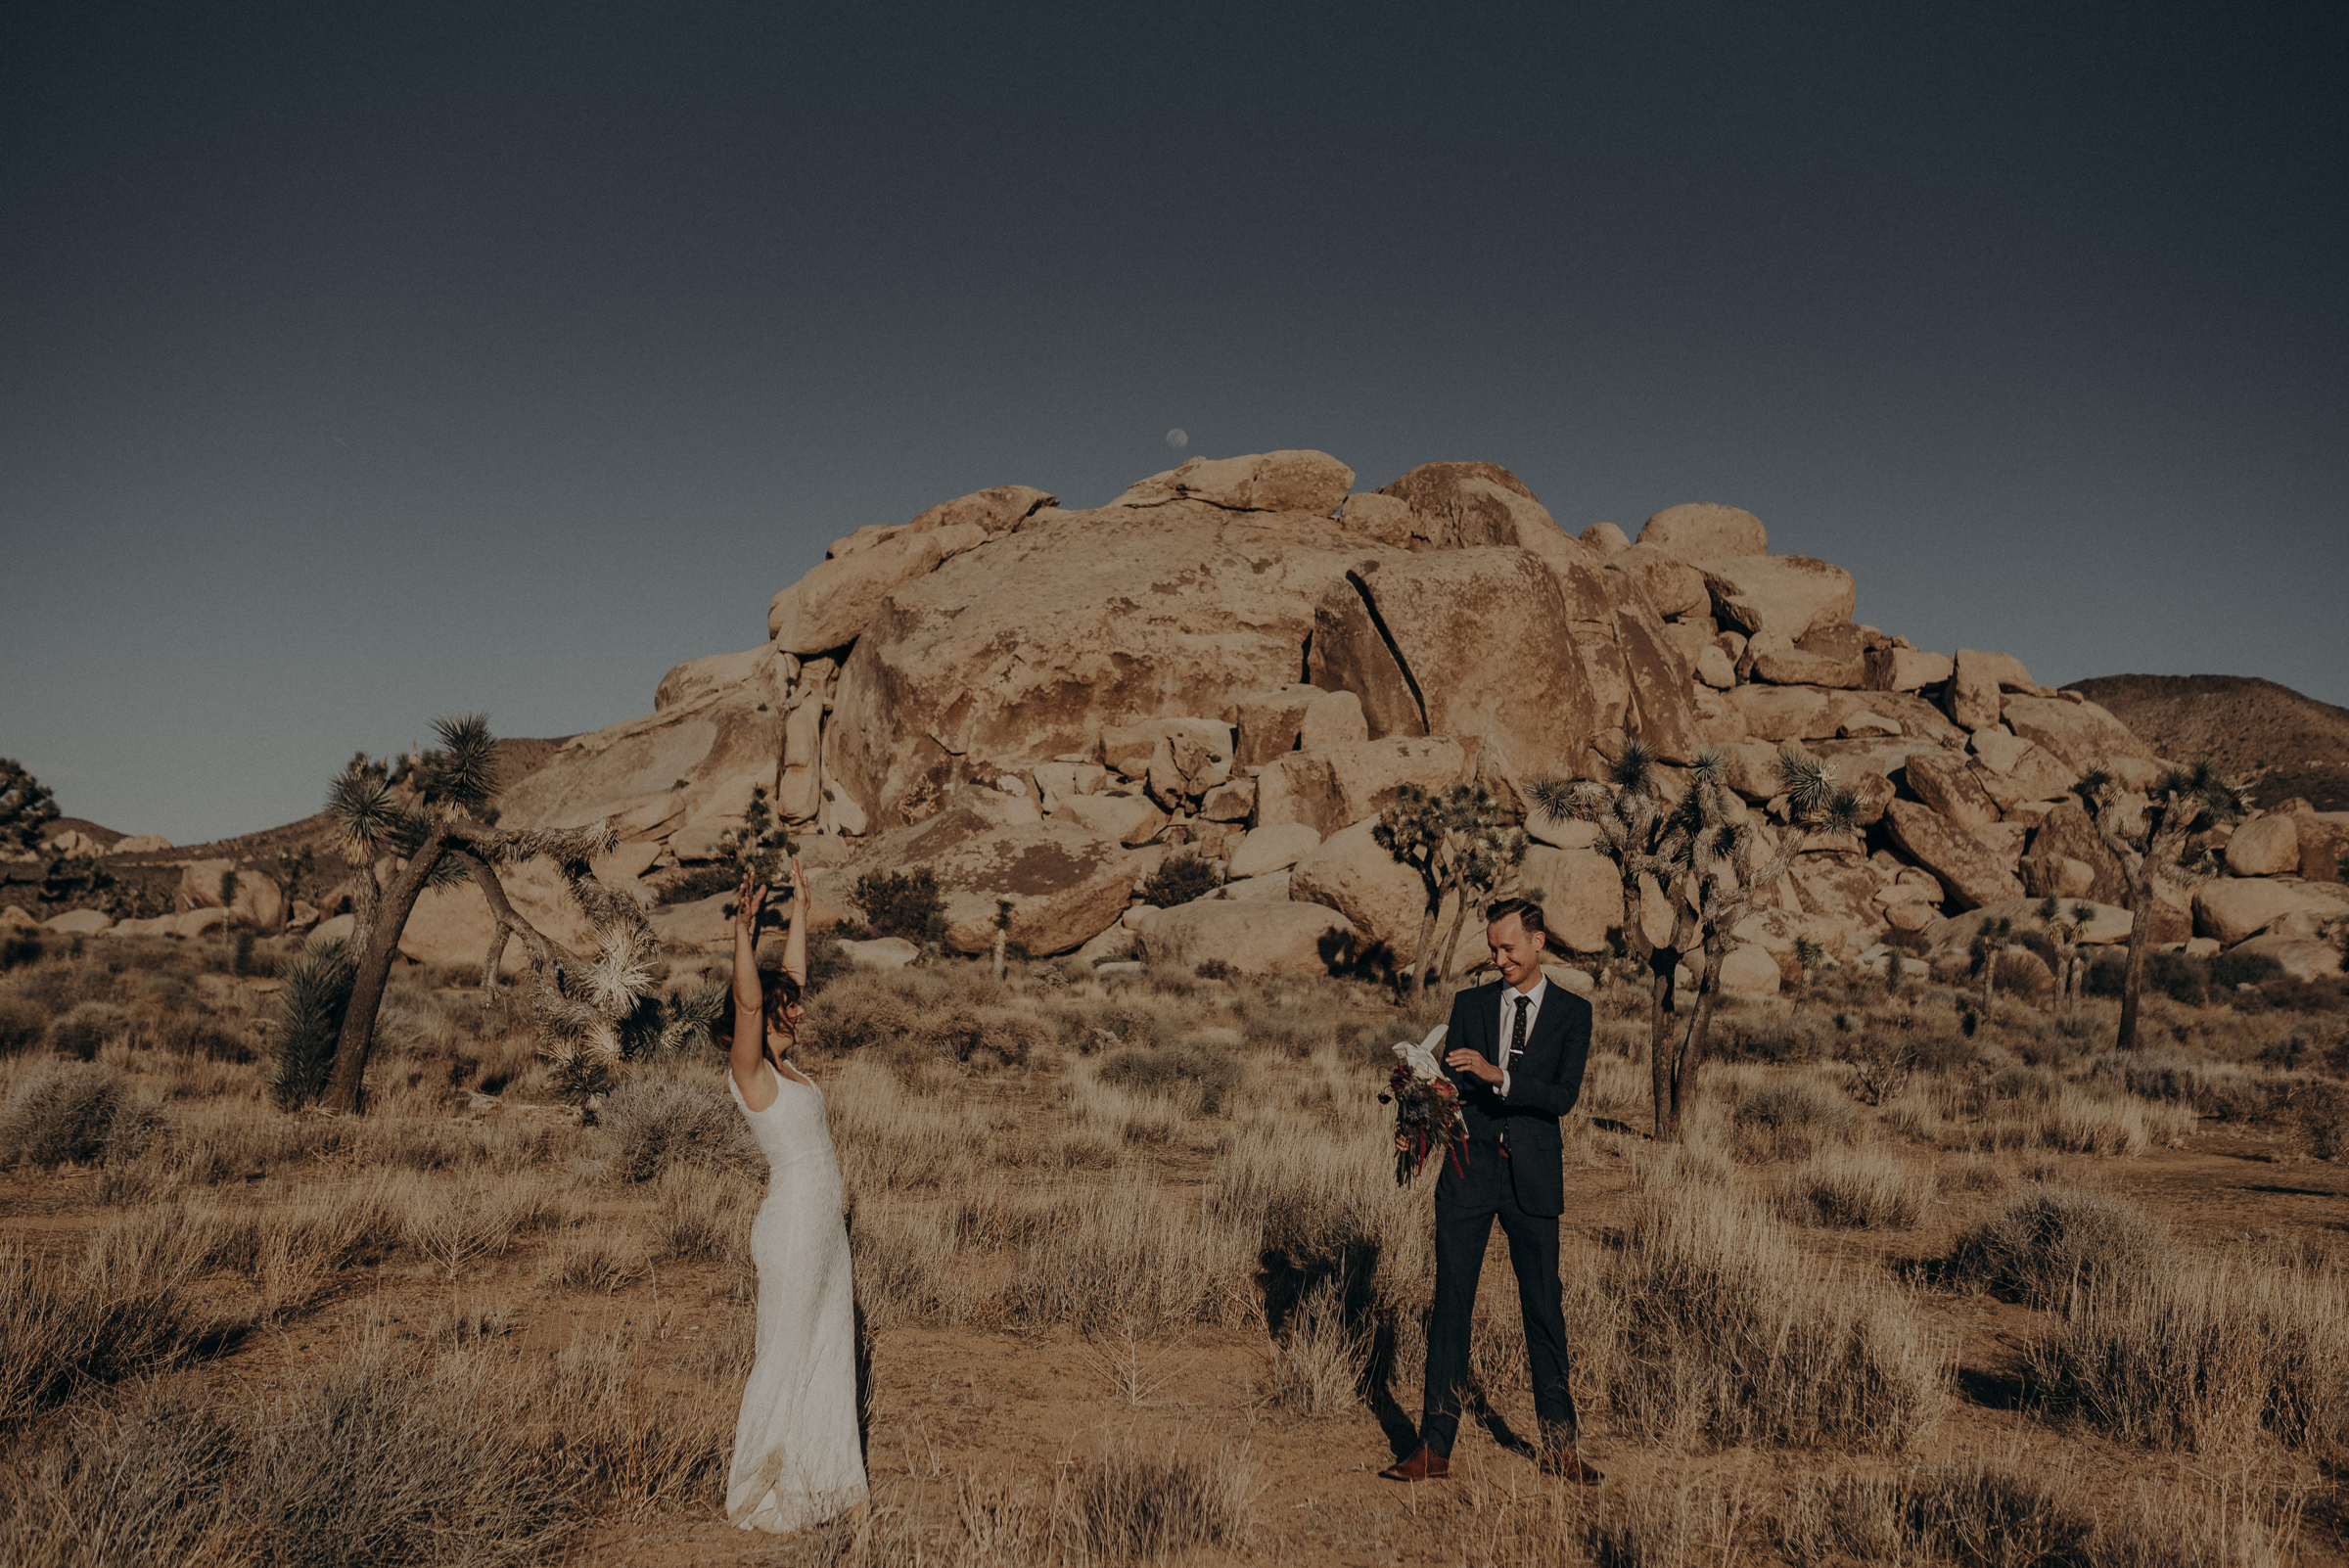 Joshua Tree Elopement - Los Angeles Wedding Photographers - IsaiahAndTaylor.com-012.jpg